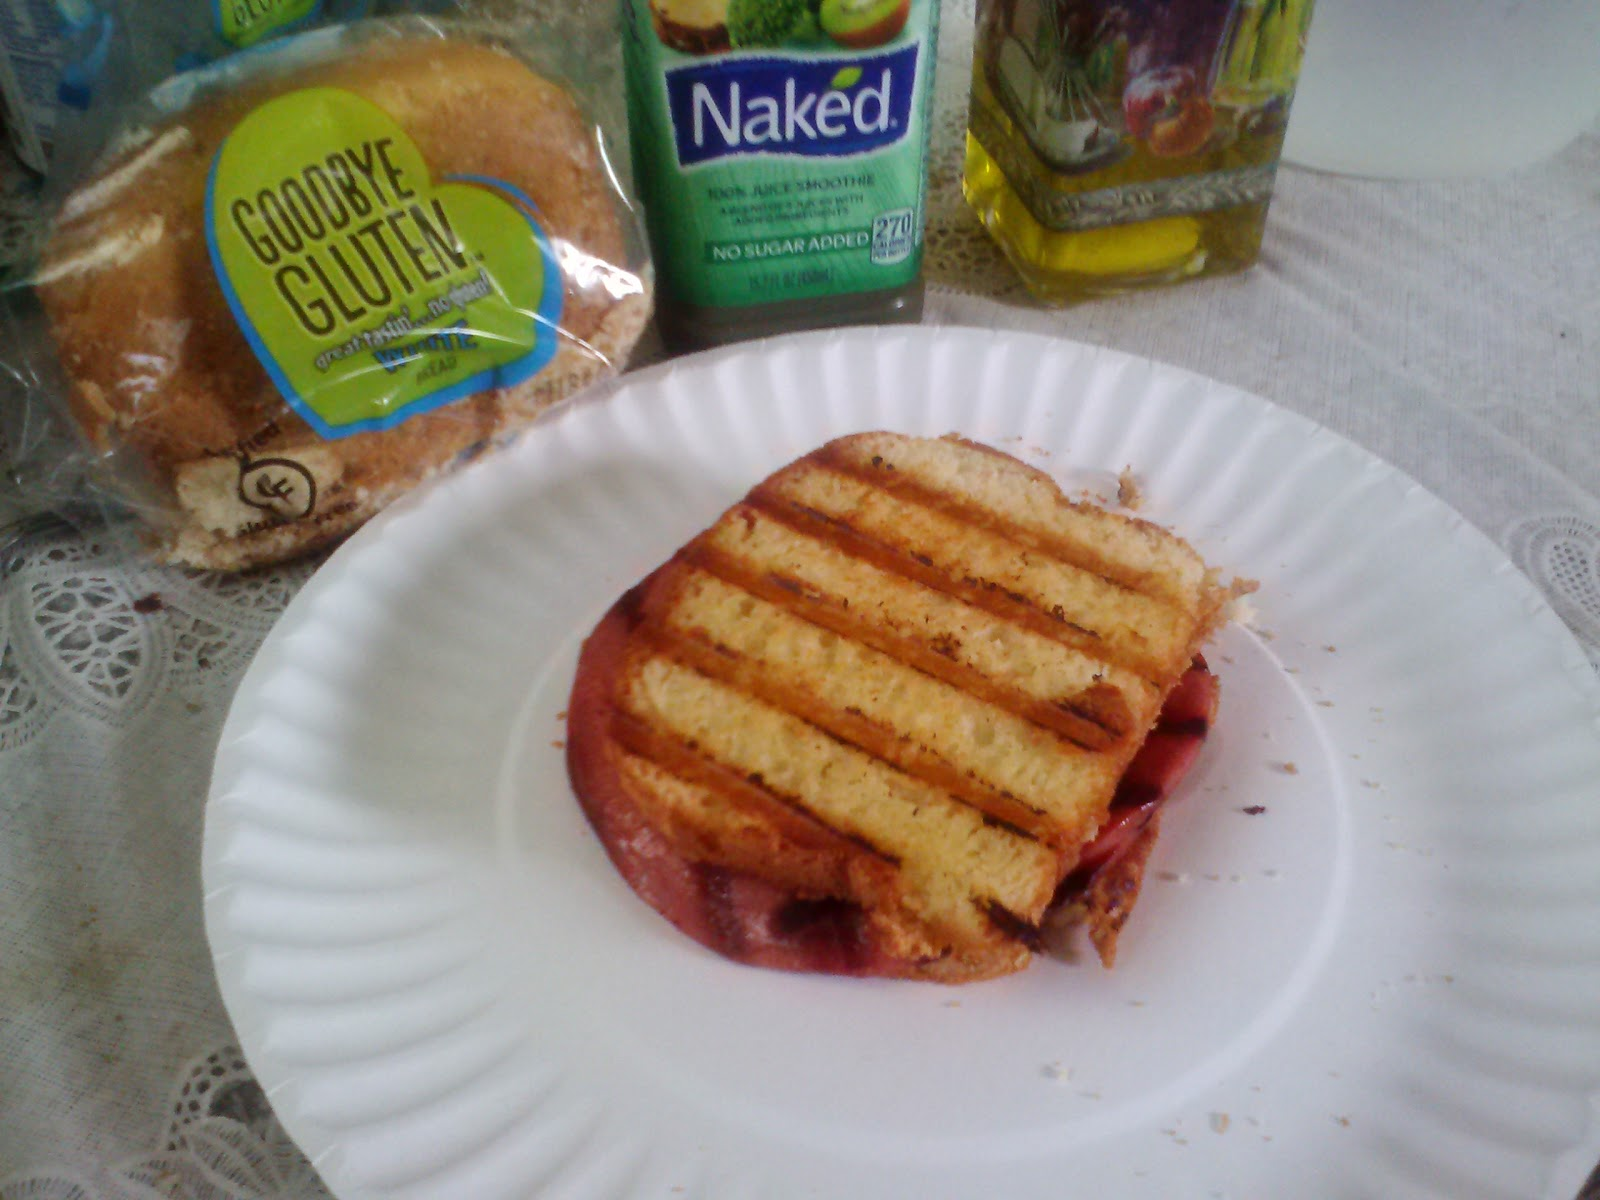 Gluten Free Sandwich with GoodBye Gluten Bread